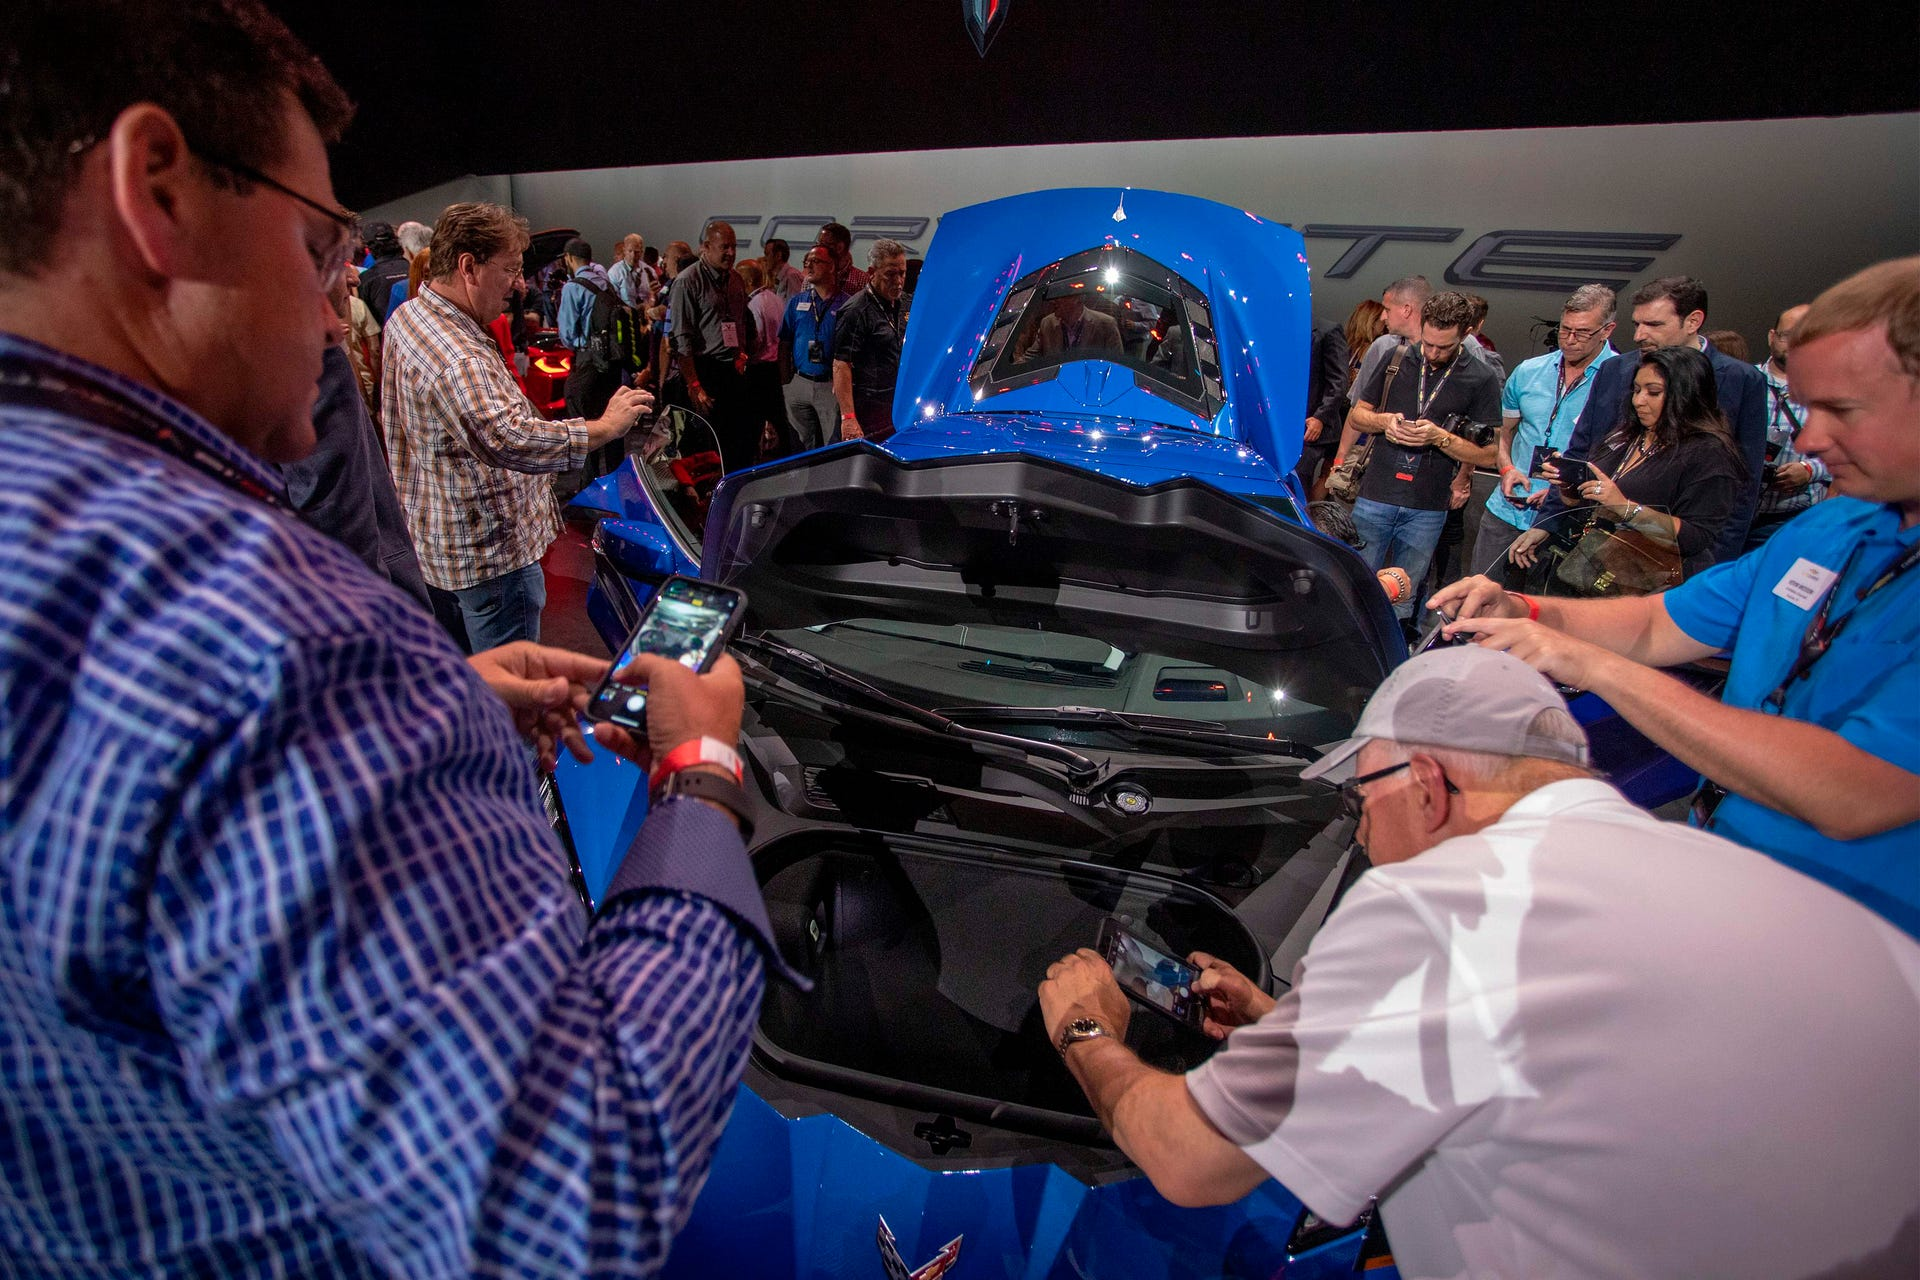 People look at the new mid-engine 2020 Corvette Stingray at the Next Generation Corvette Reveal event in Irvine, California on July 18, 2019.